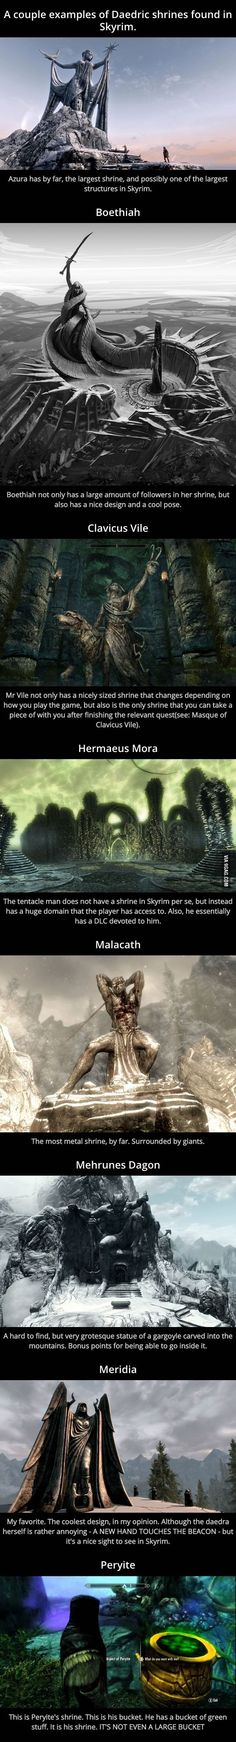 Why Peryite is the Worst Daedric Prince in Skyrim: Shrine Analysis - 9GAG: